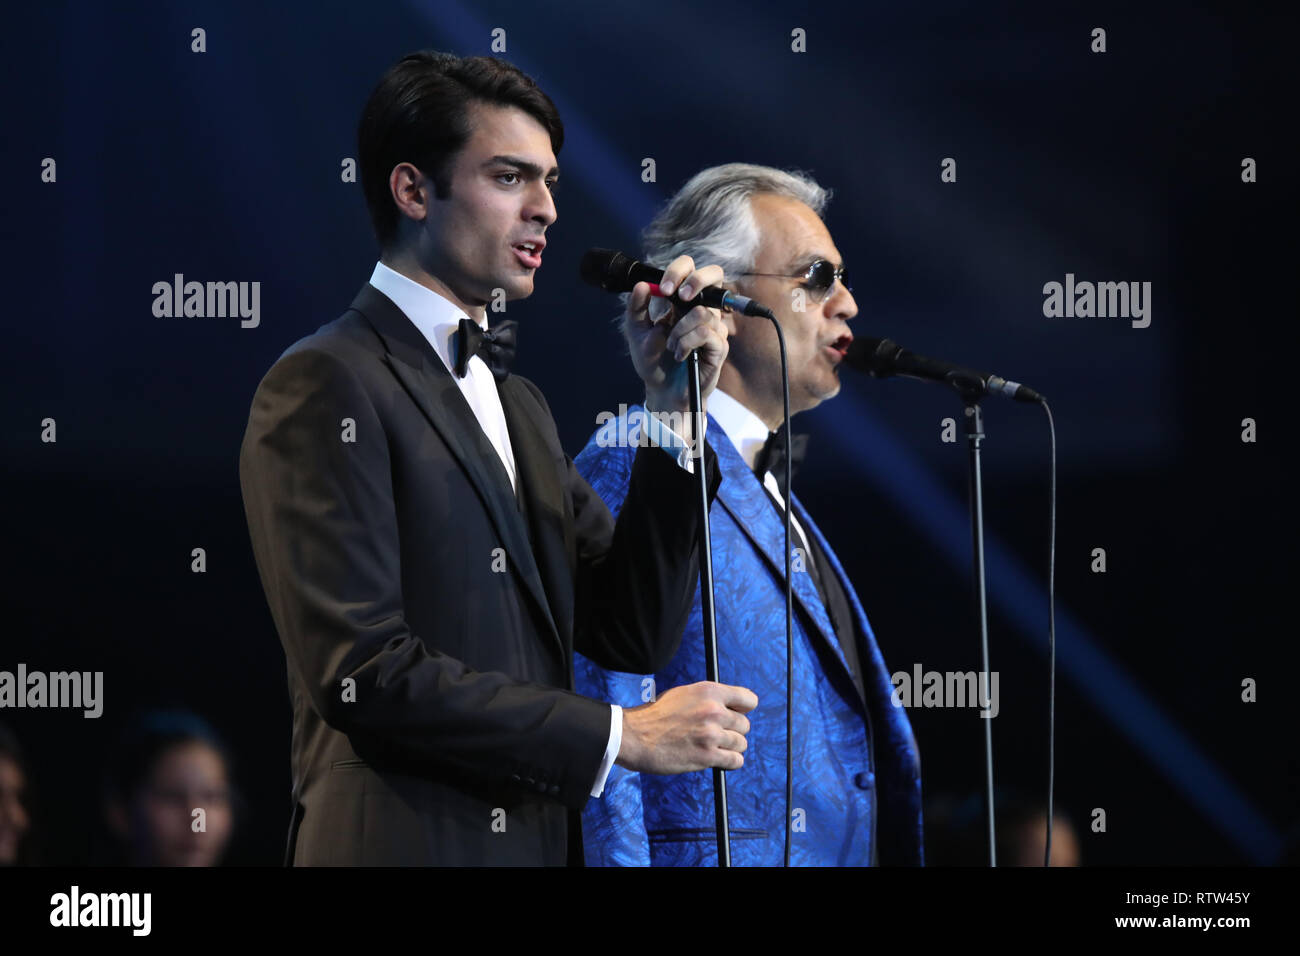 Andrea Bocelli and Matteo Bocelli (left) performing at the naming ceremony of the MSC Bellissima, the largest cruise ship to be christened in the UK, at the City Cruise Terminal in Southampton. - Stock Image